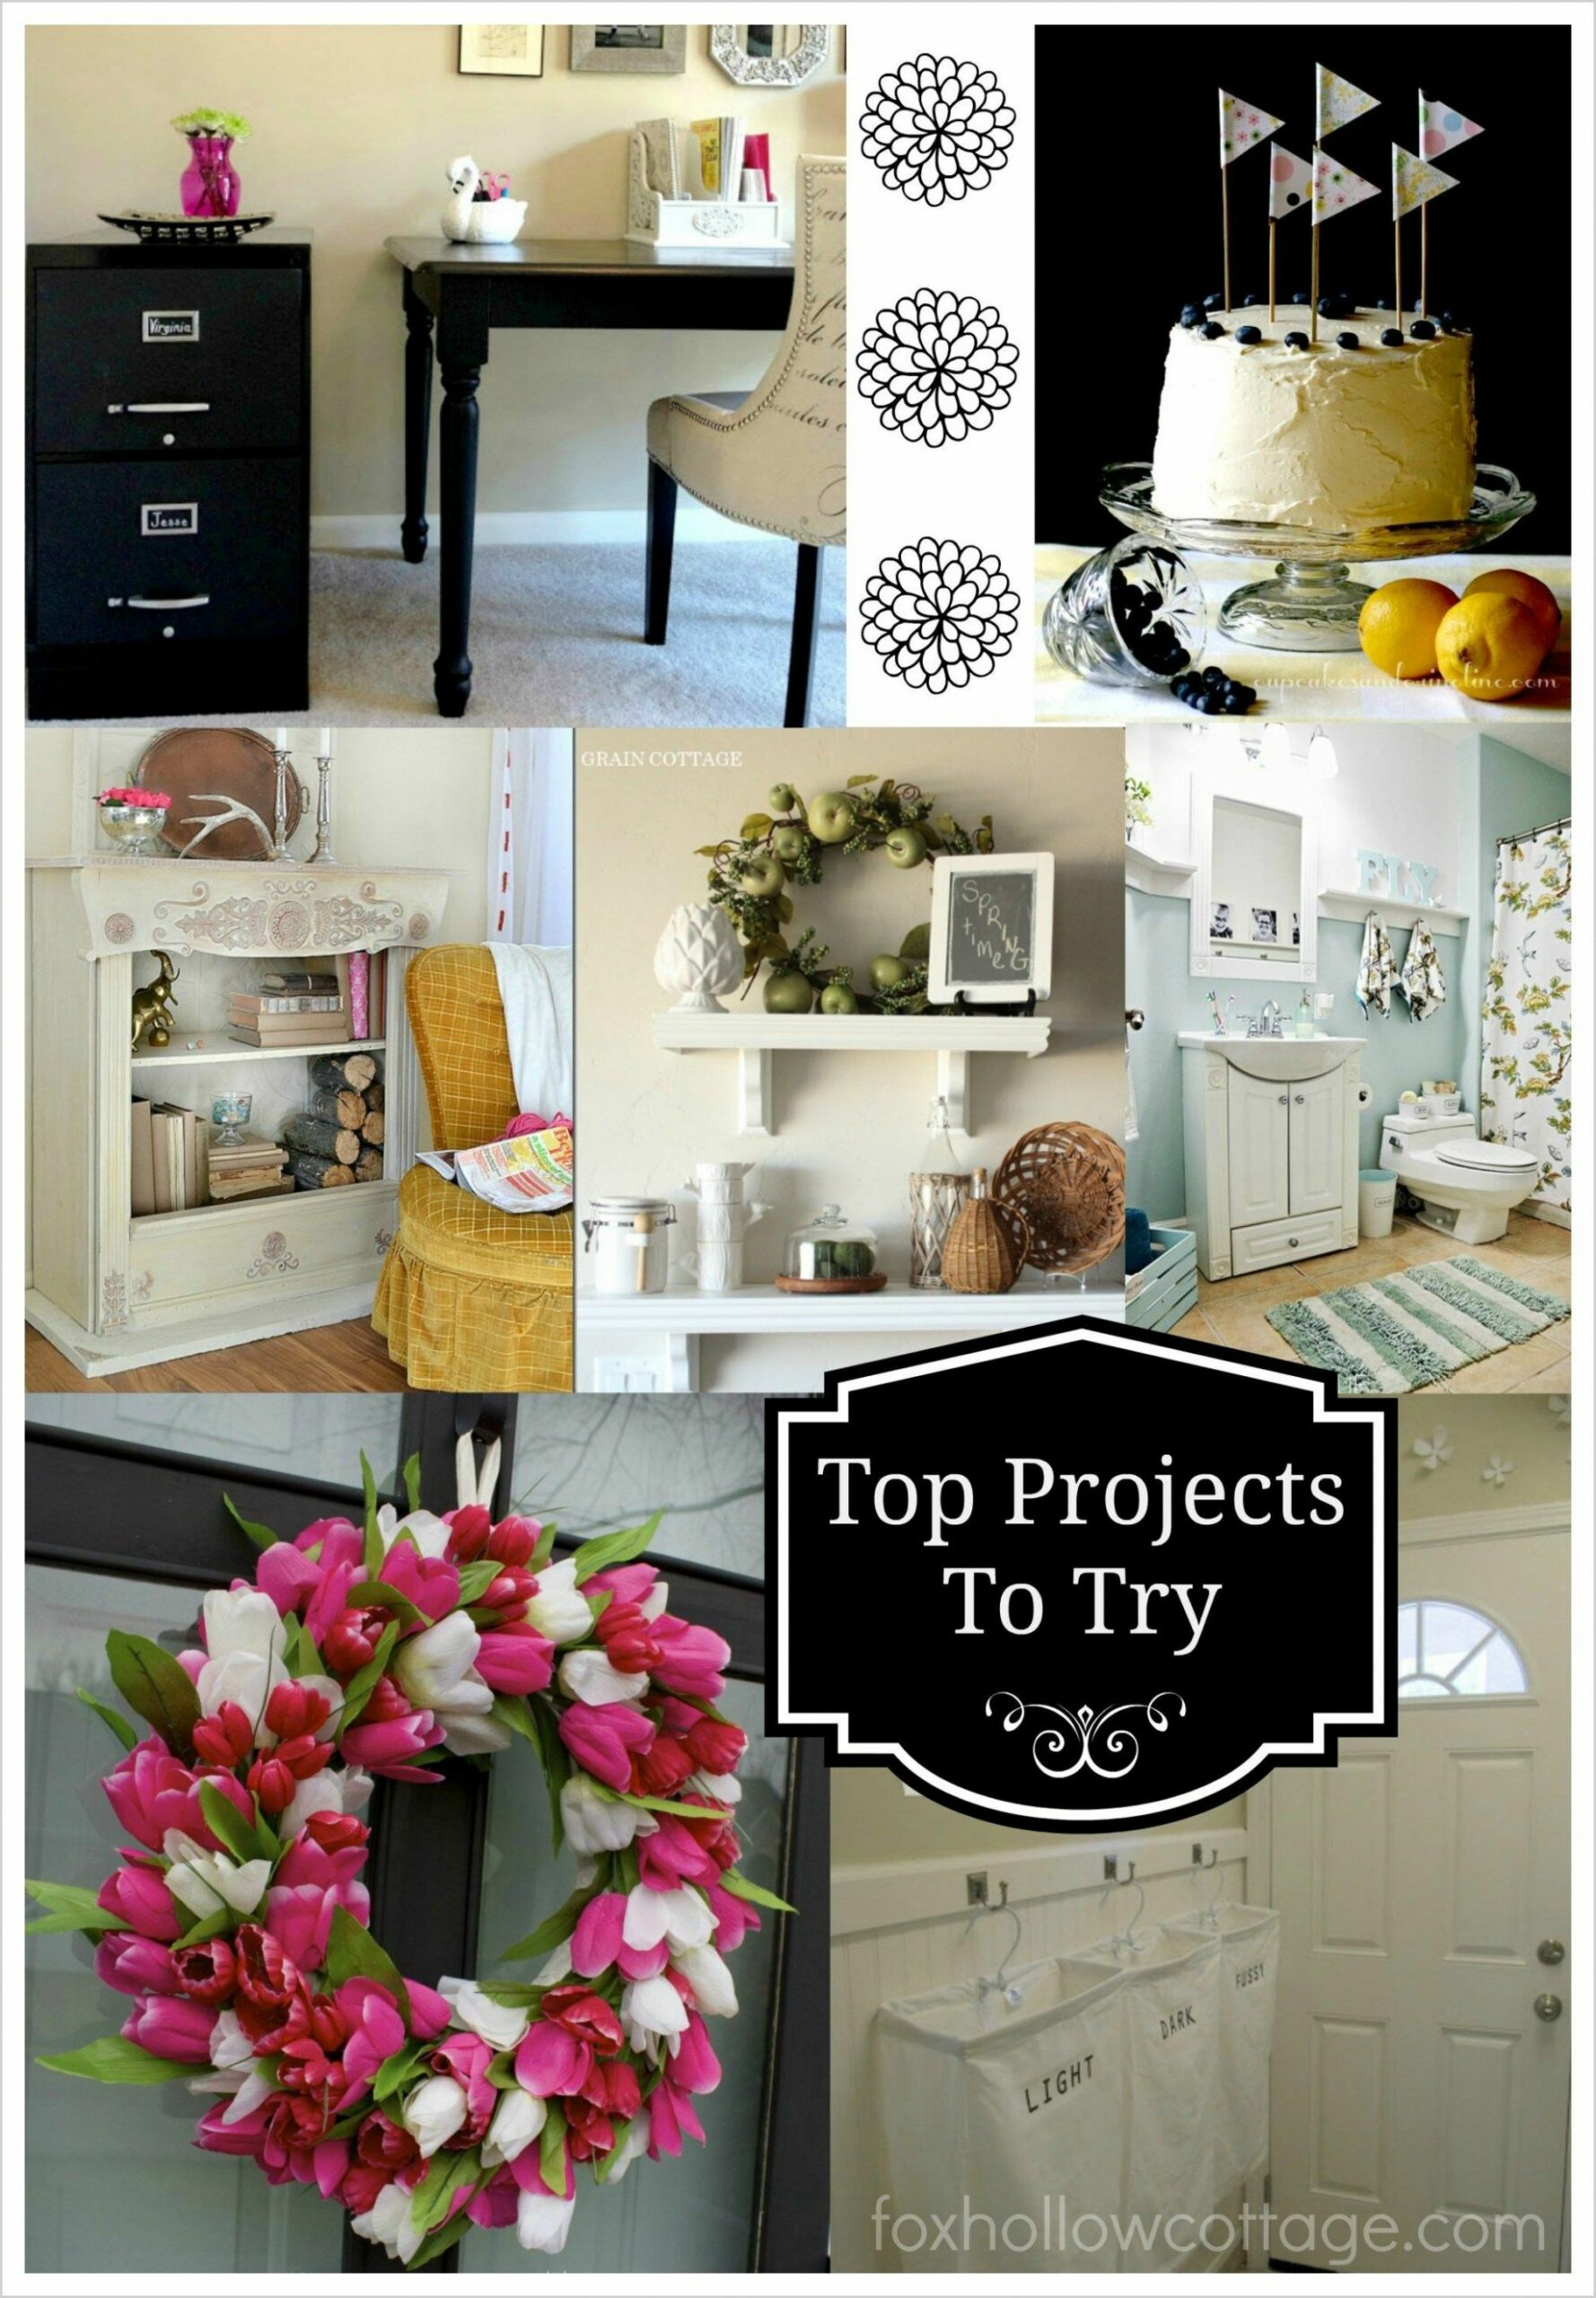 How I Successfuly Organized My Very Own Home Decor Ideas Pinterest ..